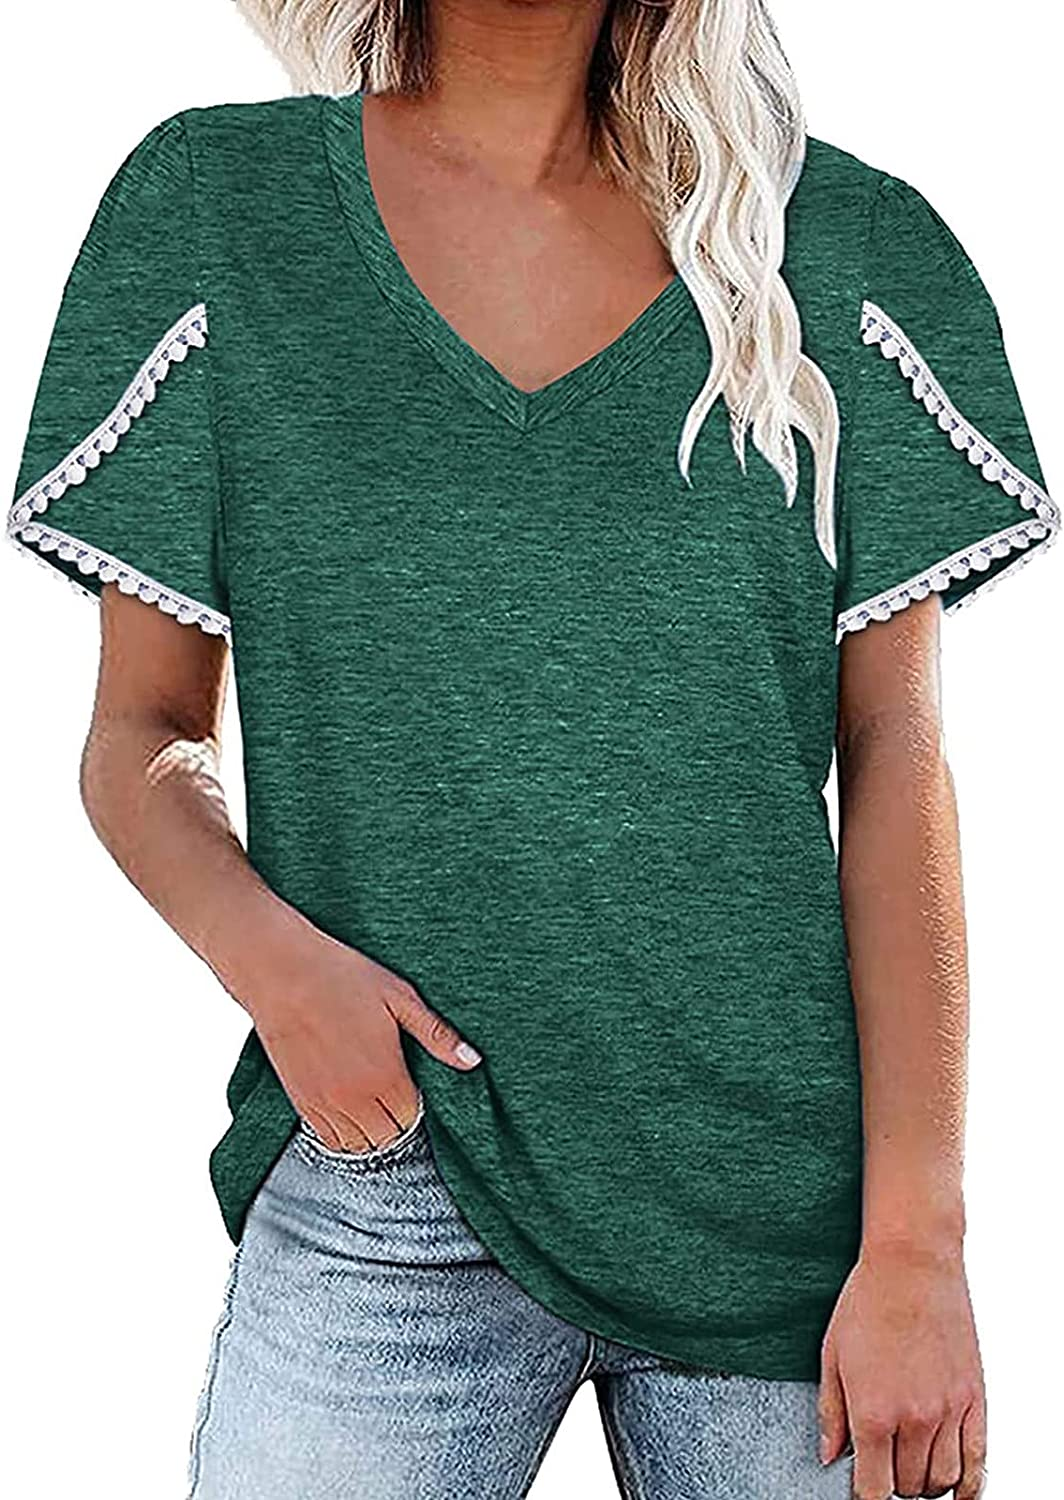 Women's Summer Short Sleeve Max Financial sales sale 70% OFF Tops T V-Neck Splicing Color Fashion